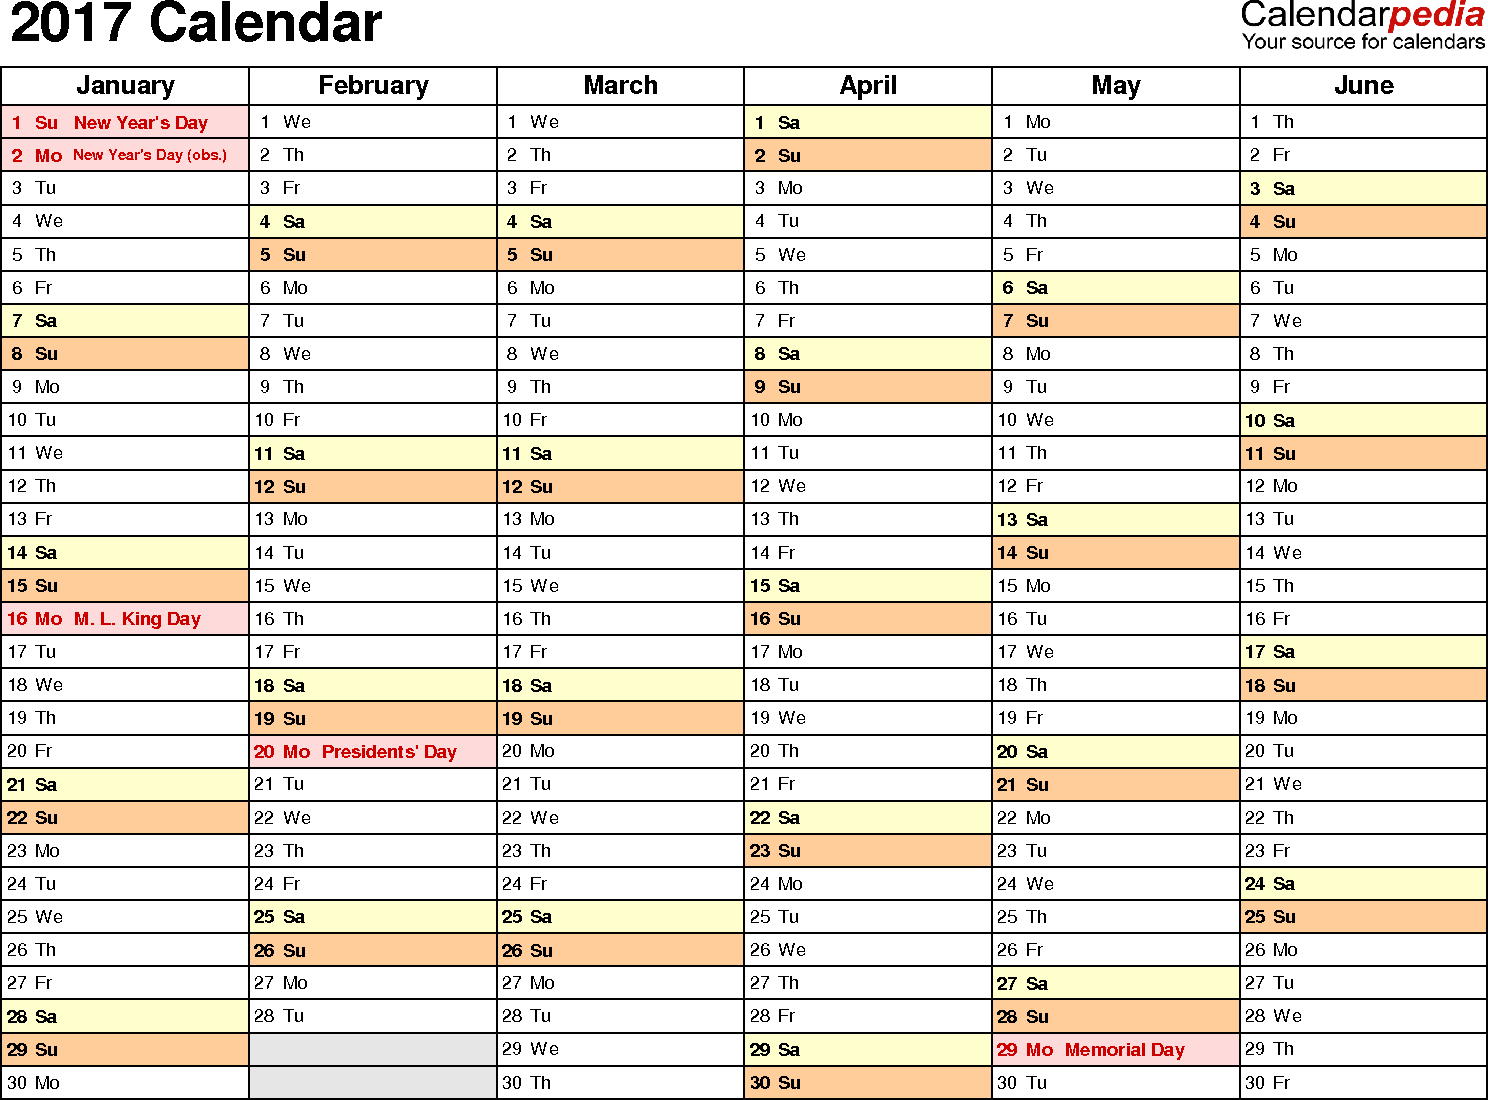 Ediblewildsus  Wonderful  Calendar  Download  Free Printable Excel Templates Xls With Fascinating Template   Calendar For Excel Months Horizontally  Pages Landscape Orientation With Breathtaking Create Schedule In Excel Also Definition Of Column In Excel In Addition Graphing Equations In Excel And Excel Pivot Table Formula As Well As How Do You Merge Columns In Excel Additionally Microsoft Excel Tutorial For Beginners From Calendarpediacom With Ediblewildsus  Fascinating  Calendar  Download  Free Printable Excel Templates Xls With Breathtaking Template   Calendar For Excel Months Horizontally  Pages Landscape Orientation And Wonderful Create Schedule In Excel Also Definition Of Column In Excel In Addition Graphing Equations In Excel From Calendarpediacom